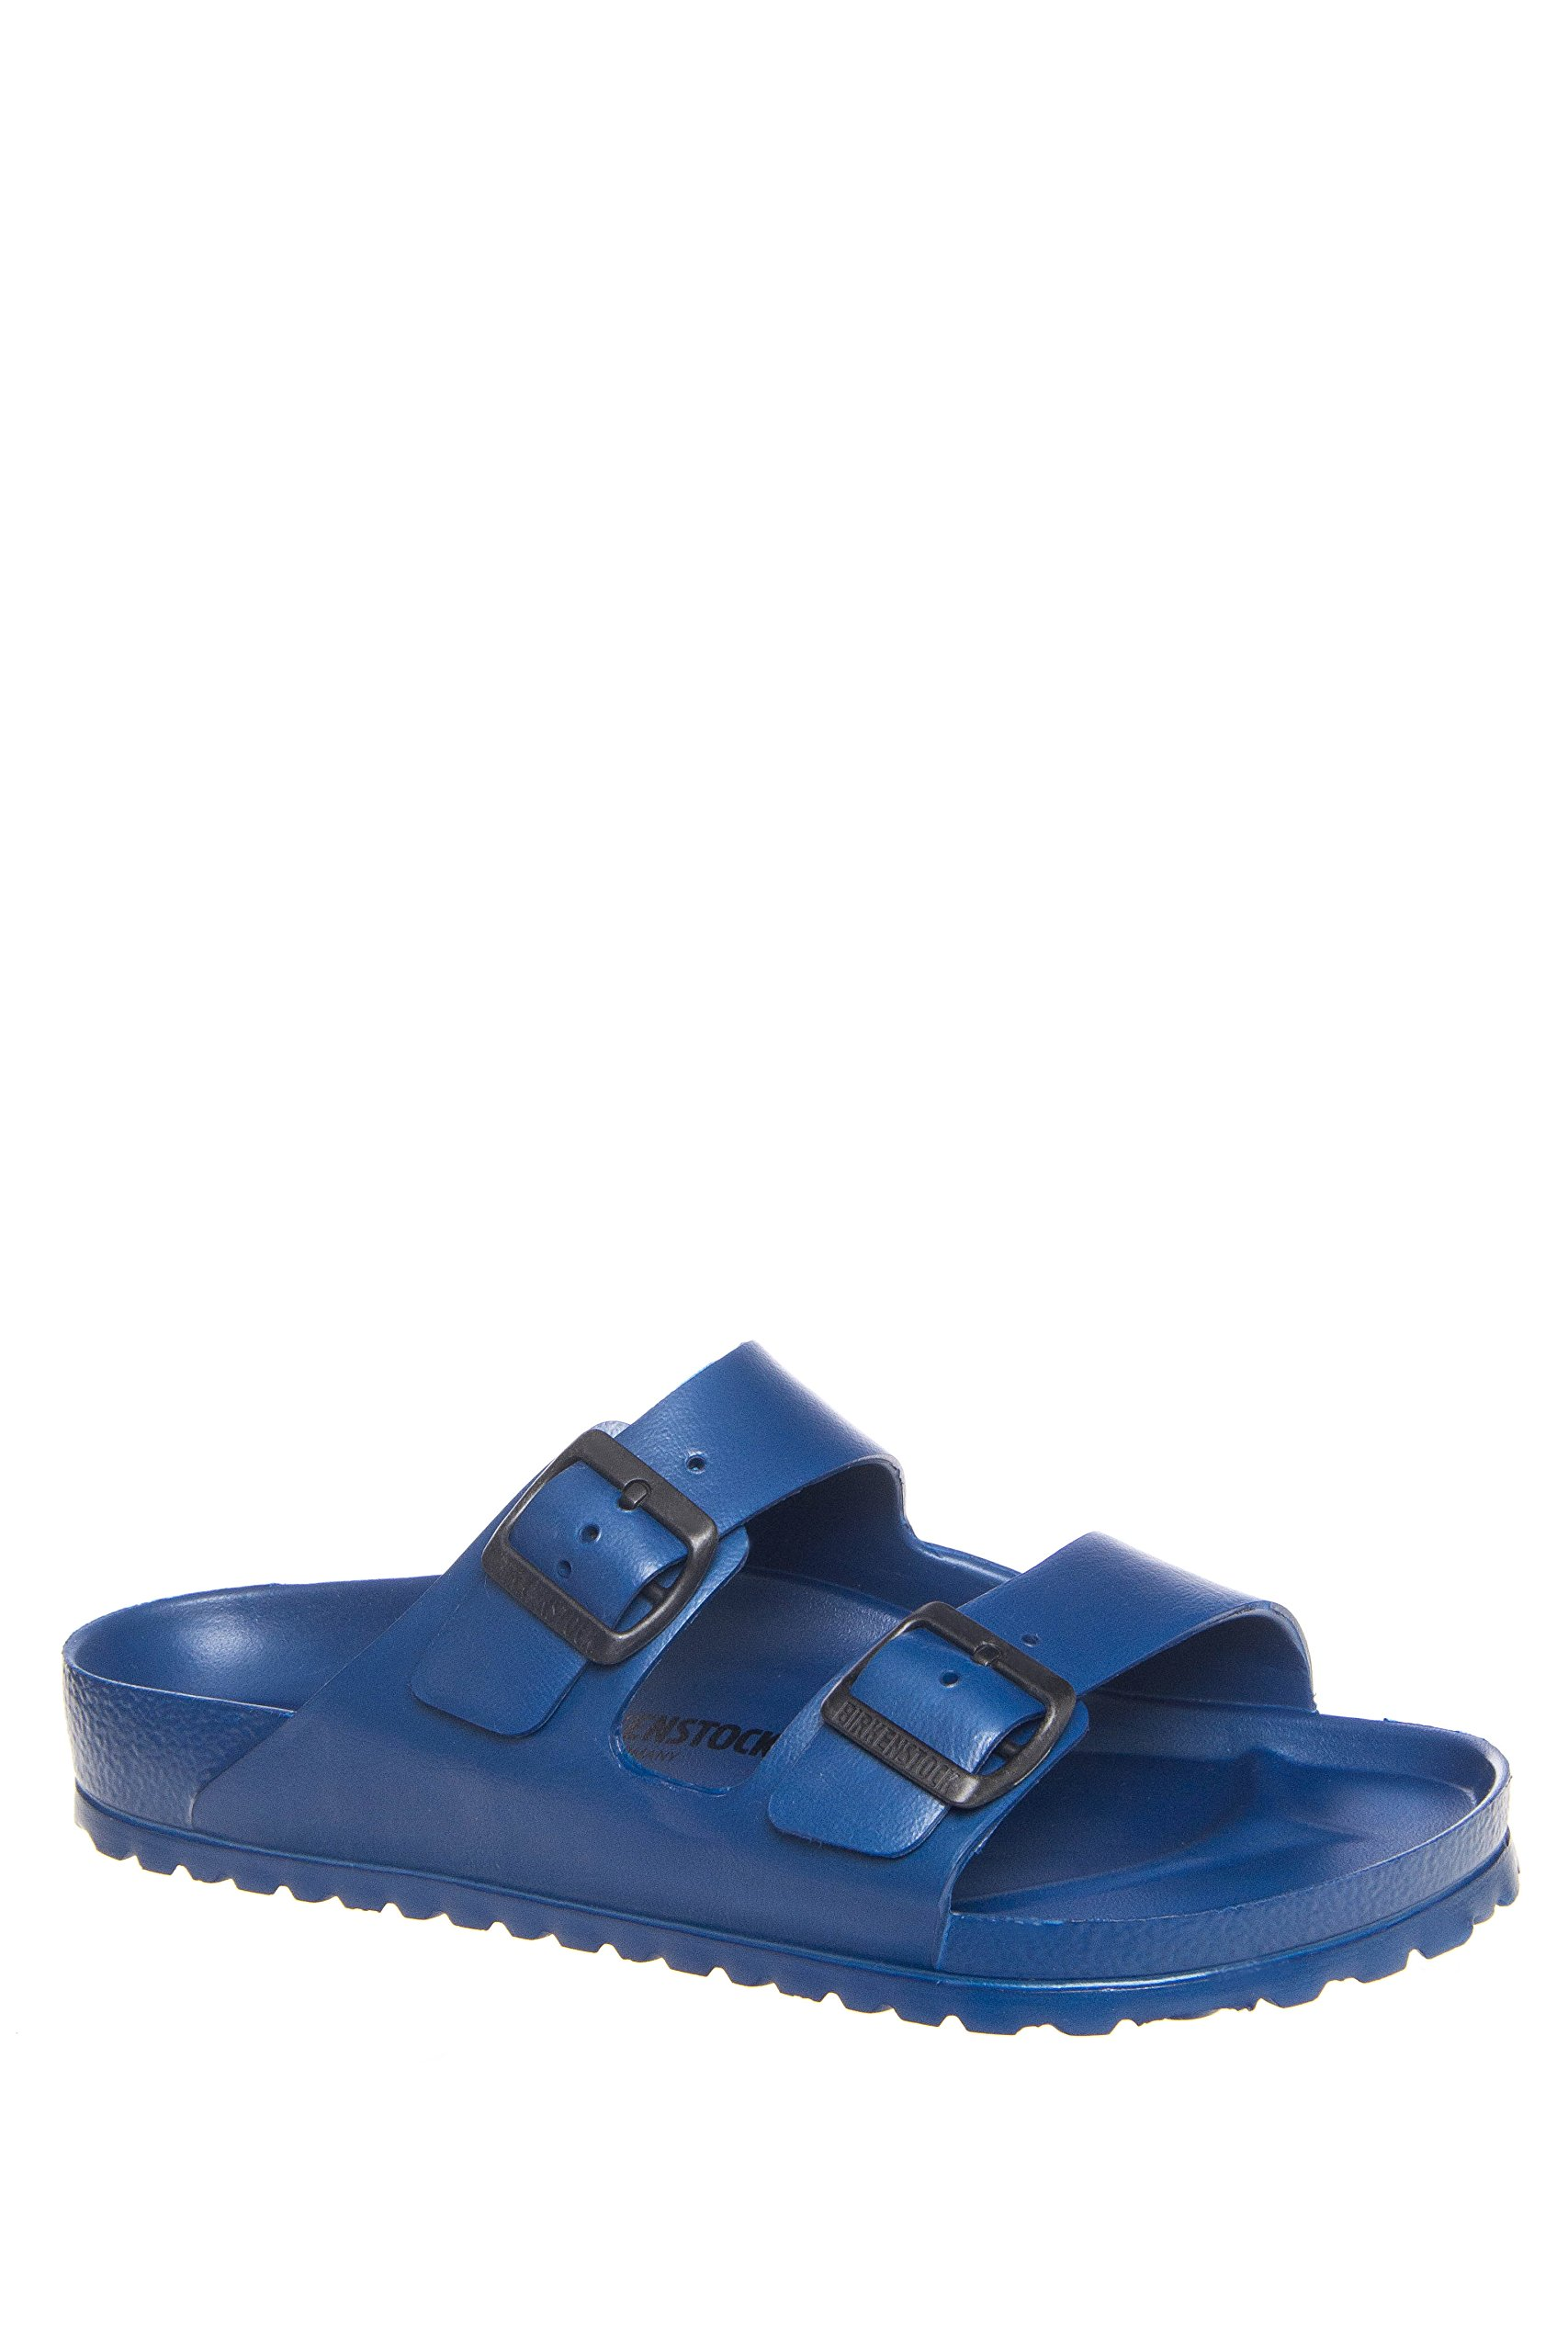 Birkenstock Unisex Arizona Essentials EVA Navy Sandals - 43 M EU by Birkenstock